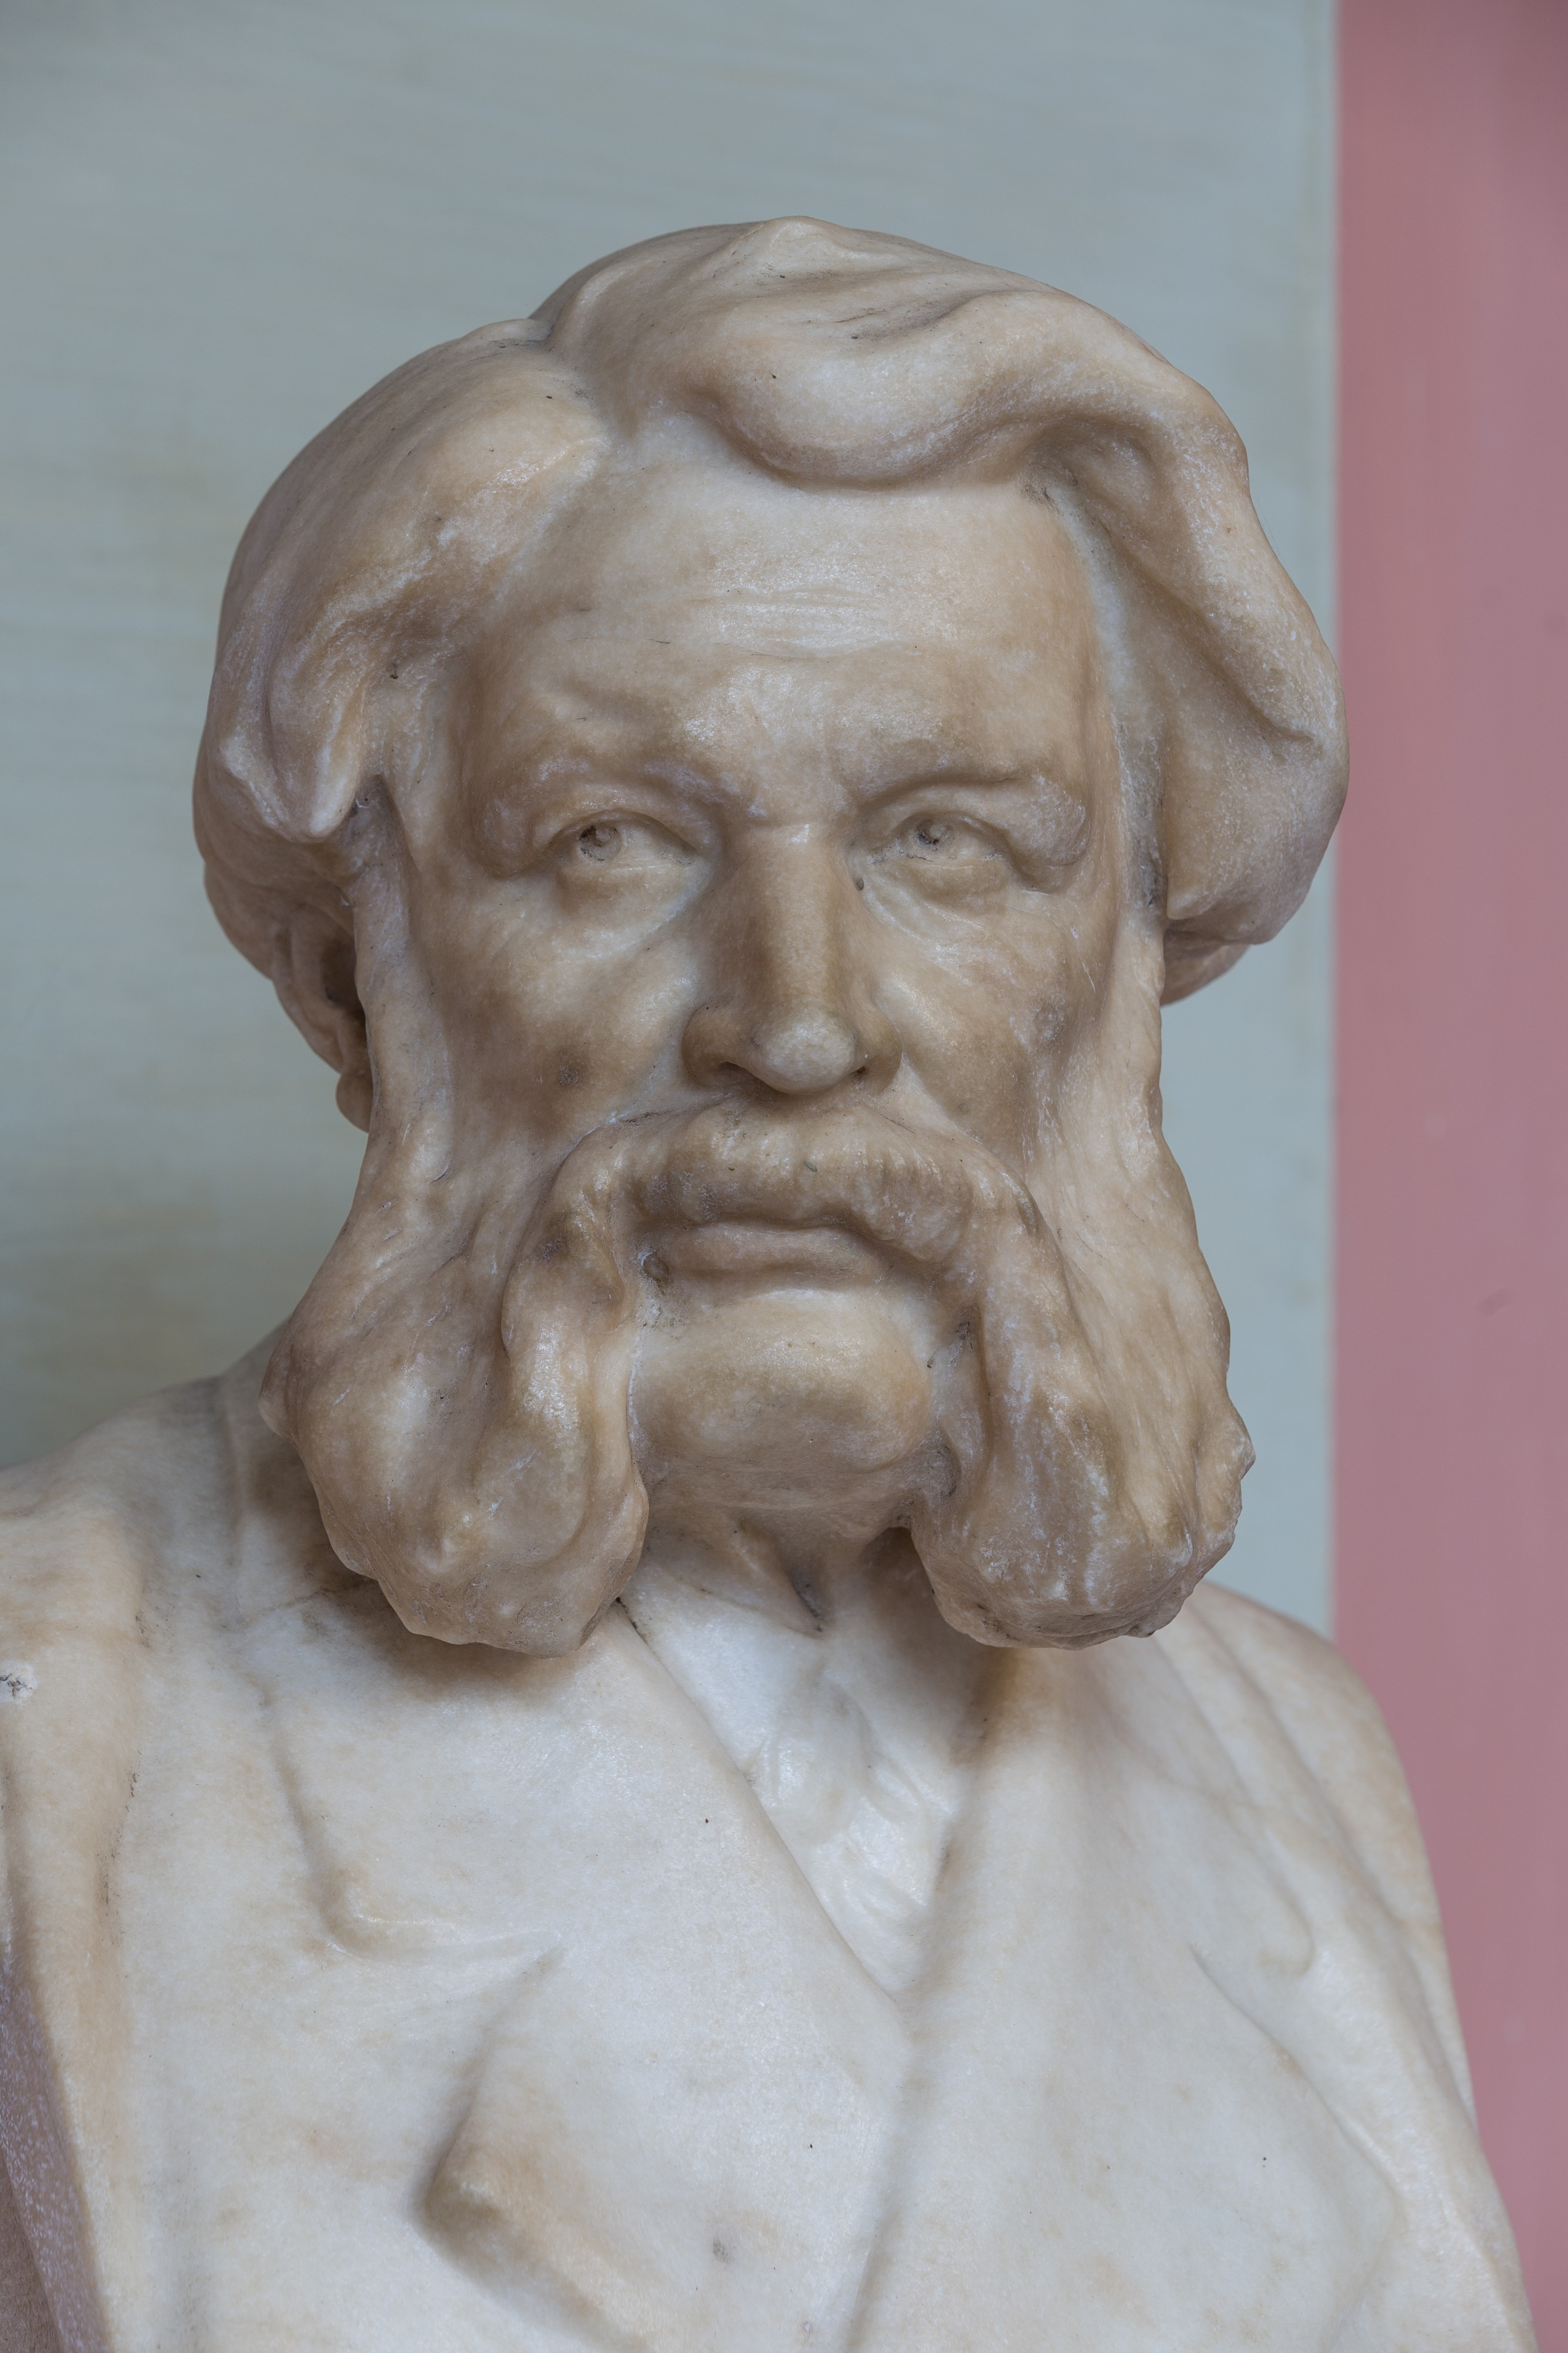 Josef Seegen (1822-1904), Nr. 72 bust (marble) in the Arkadenhof of the University of Vienna-1323